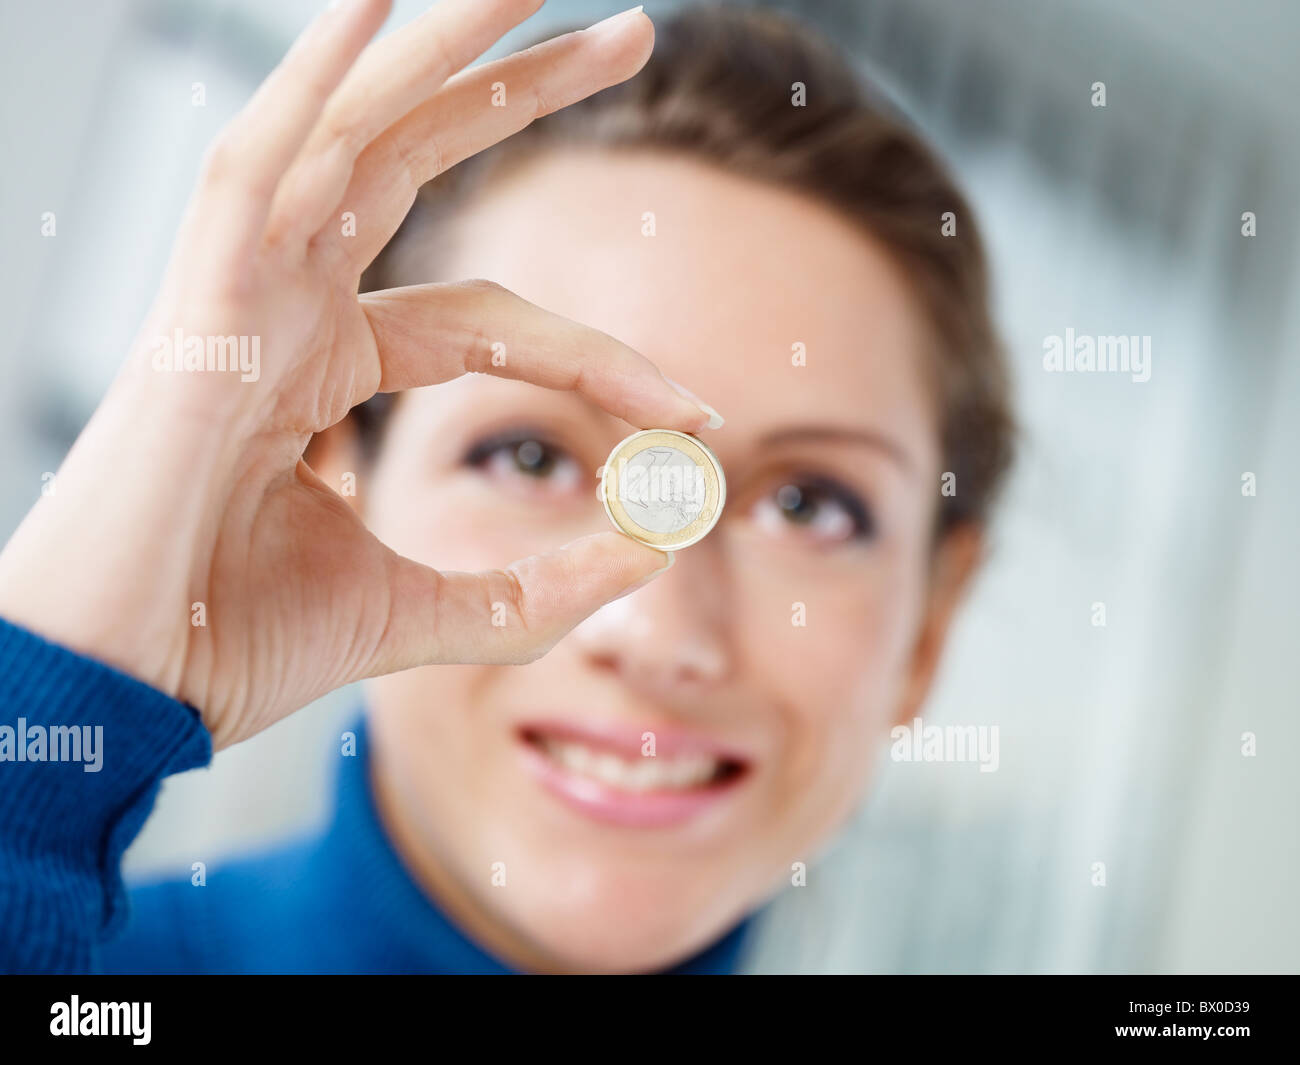 woman holding one euro coin - Stock Image